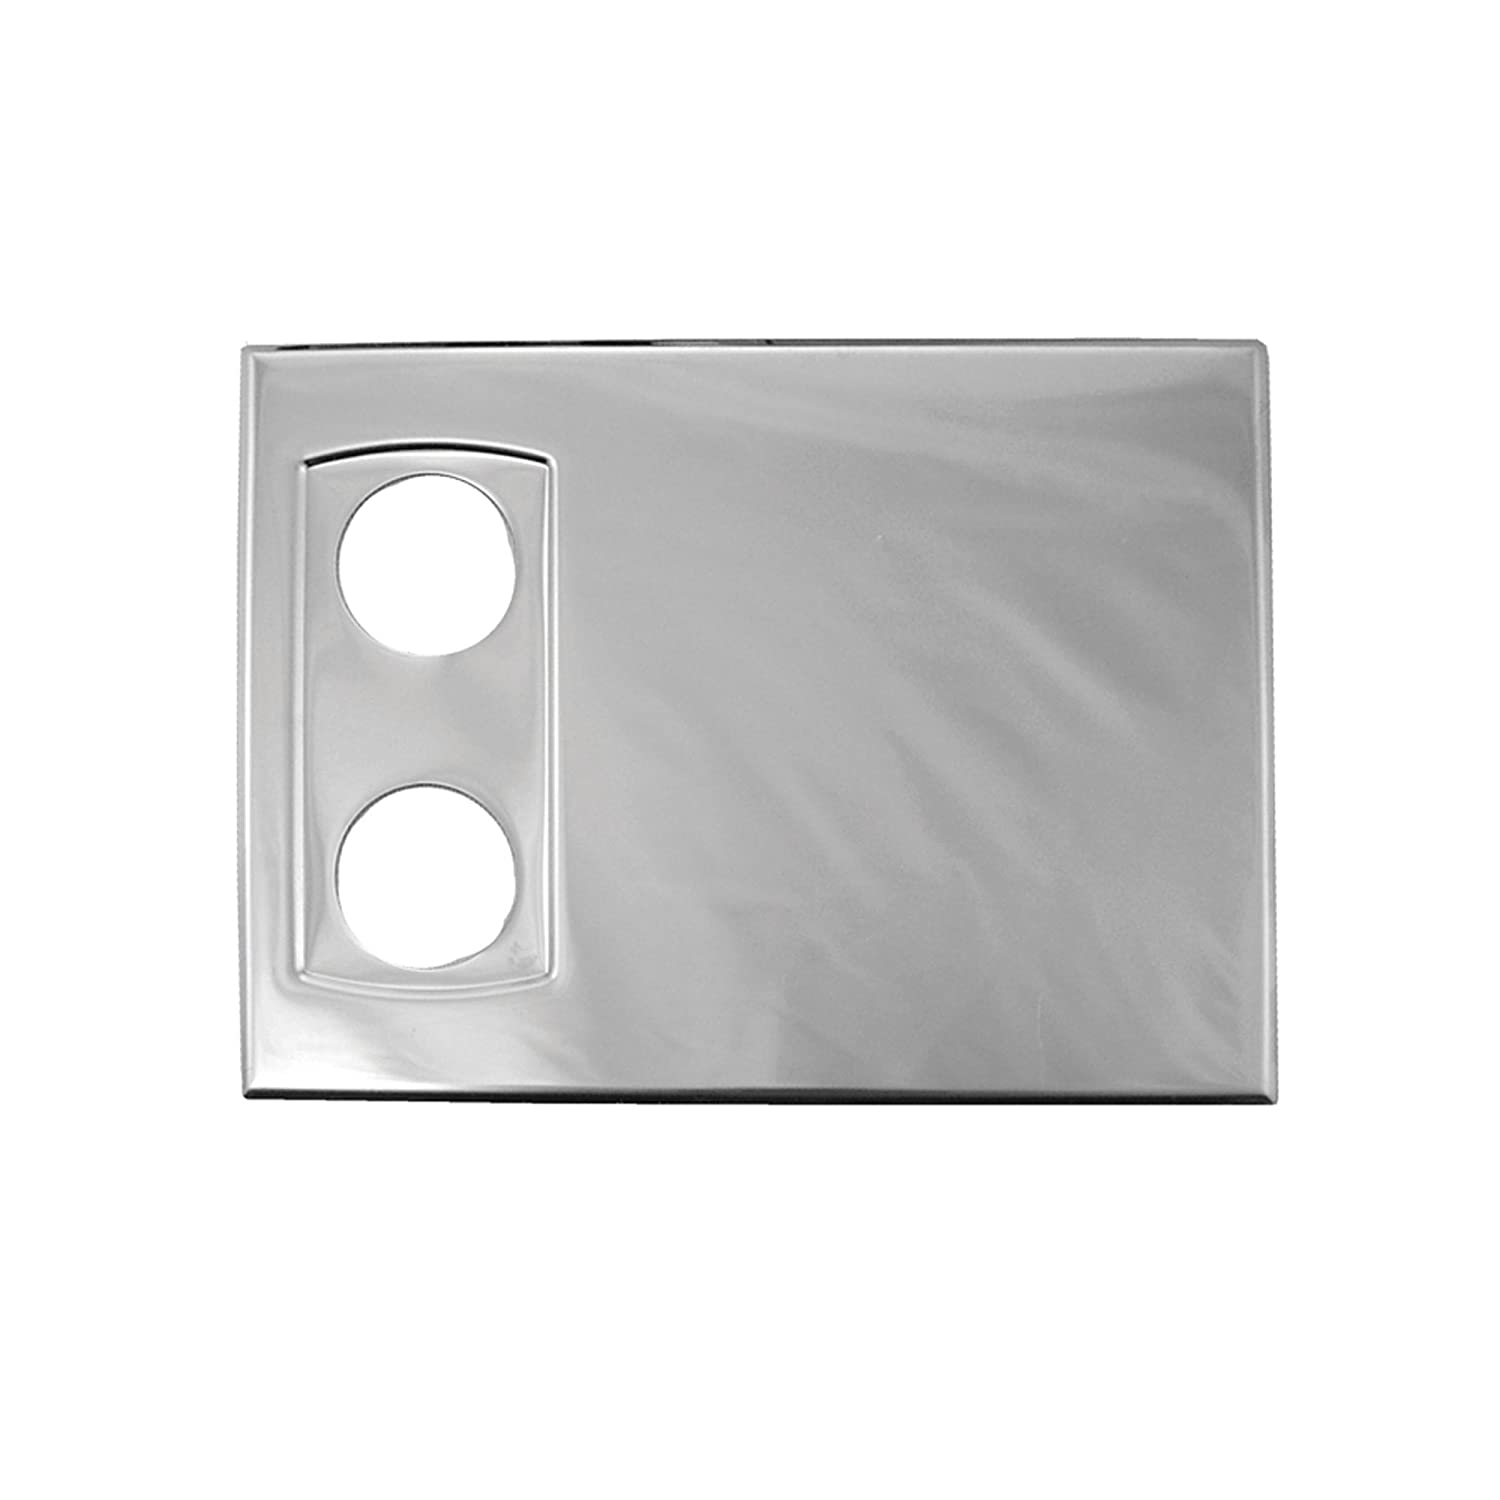 Set of 2 WingIts OCP-BS OVAL Suite Polished Stainless Steel Cover Plate